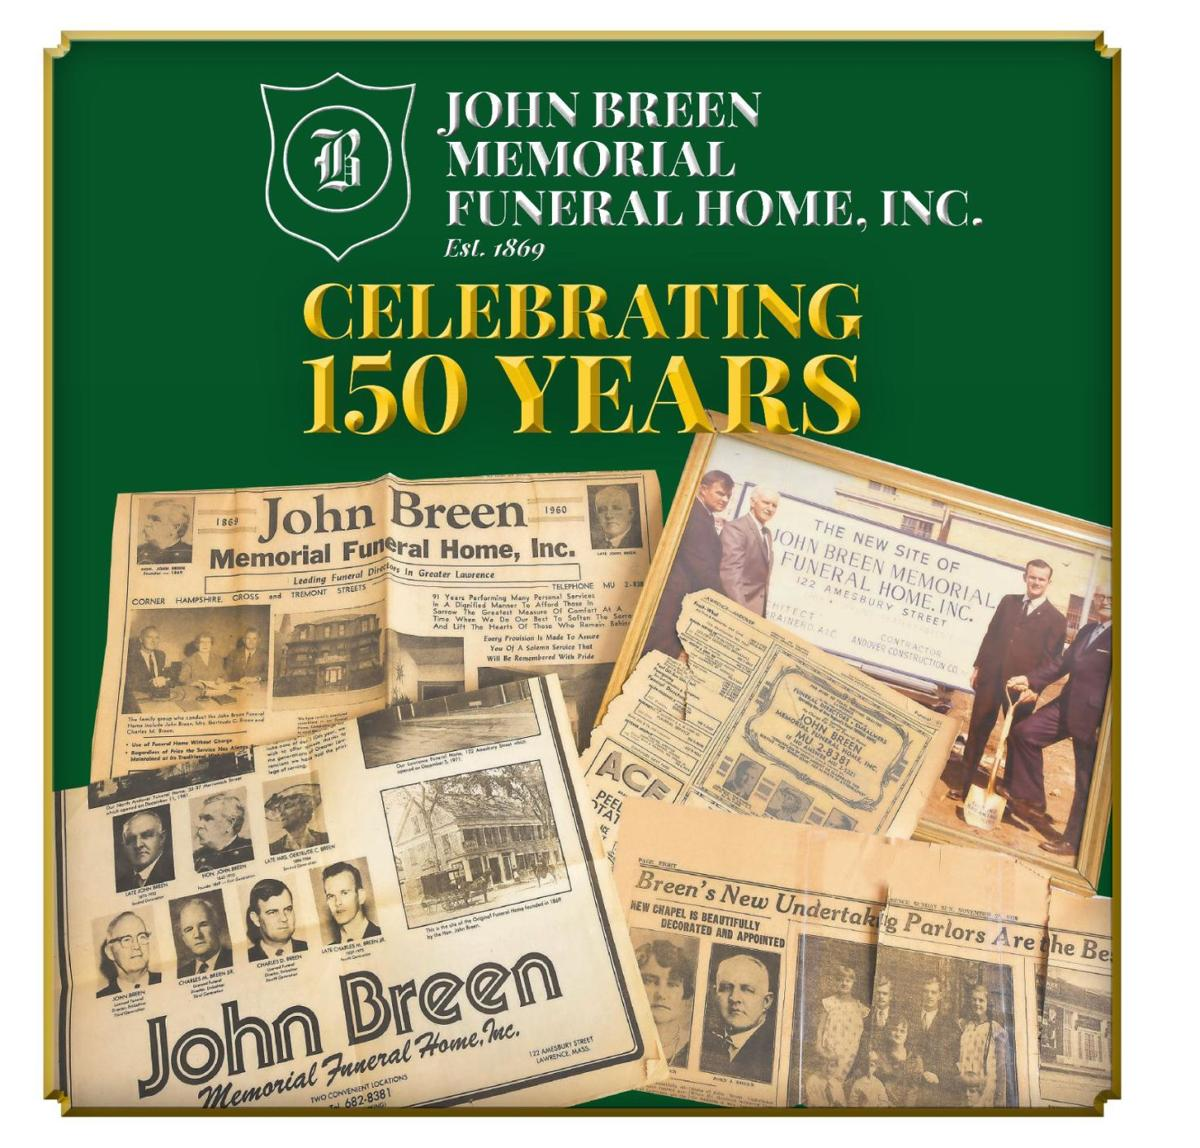 John Breen Memorial Funeral Home: Celebrating 150 Years